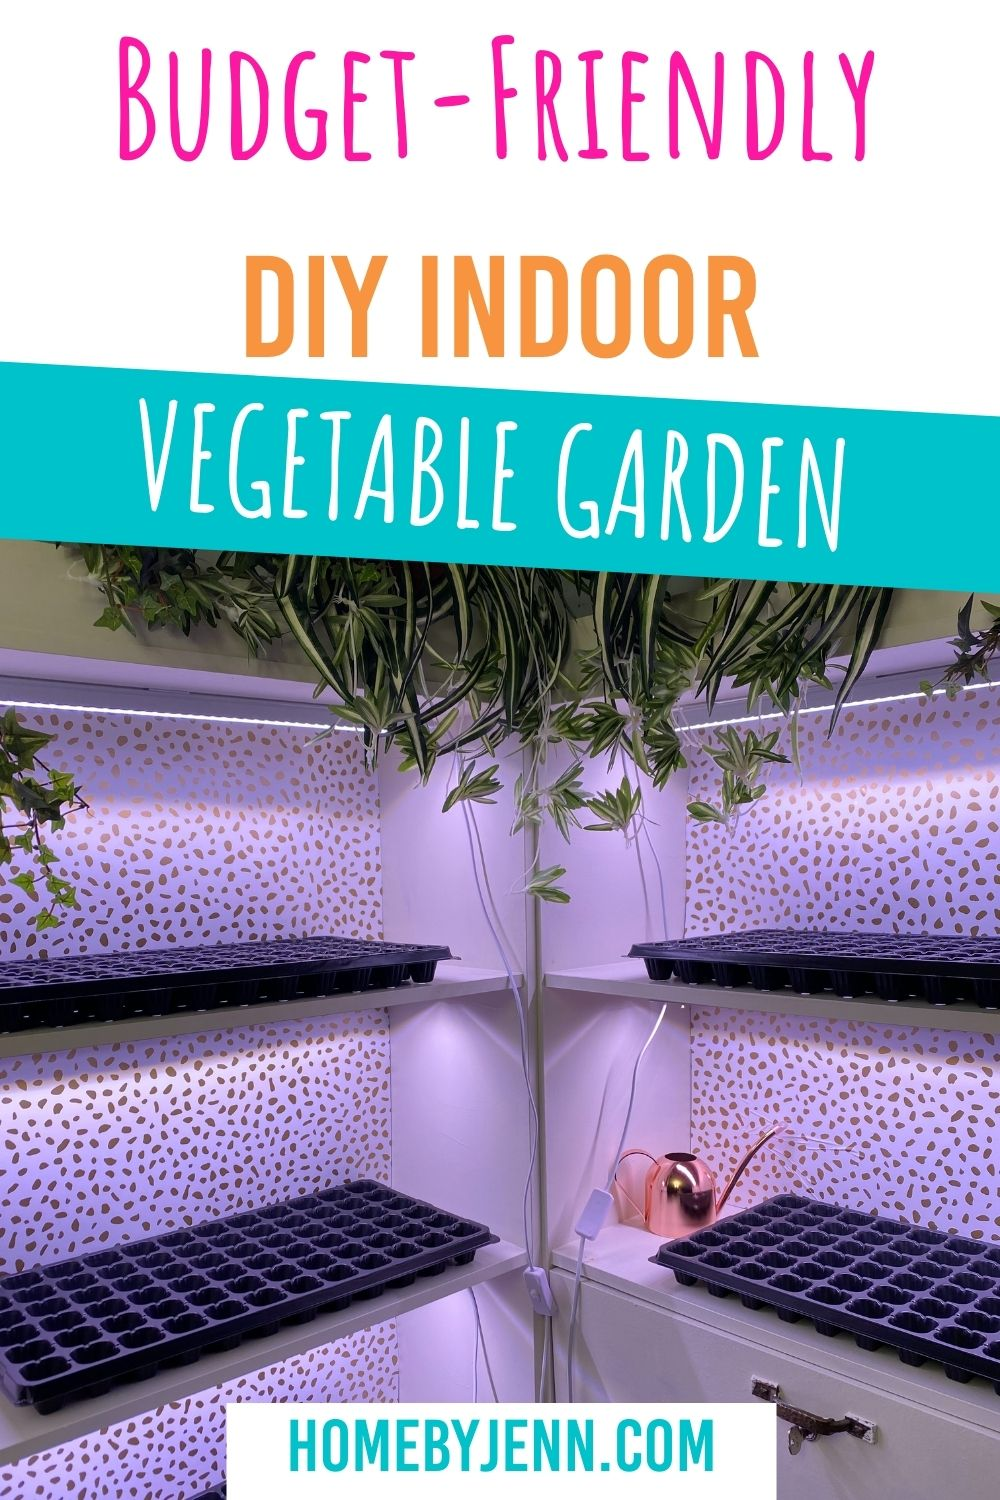 If you want to extend your growing season or start seeds indoors you need an indoor vegetable garden. Learn how simple it is to make your own indoor garden with a few supplies. You'll have your own budget-friendly indoor vegetable growing system in no time. via @homebyjenn